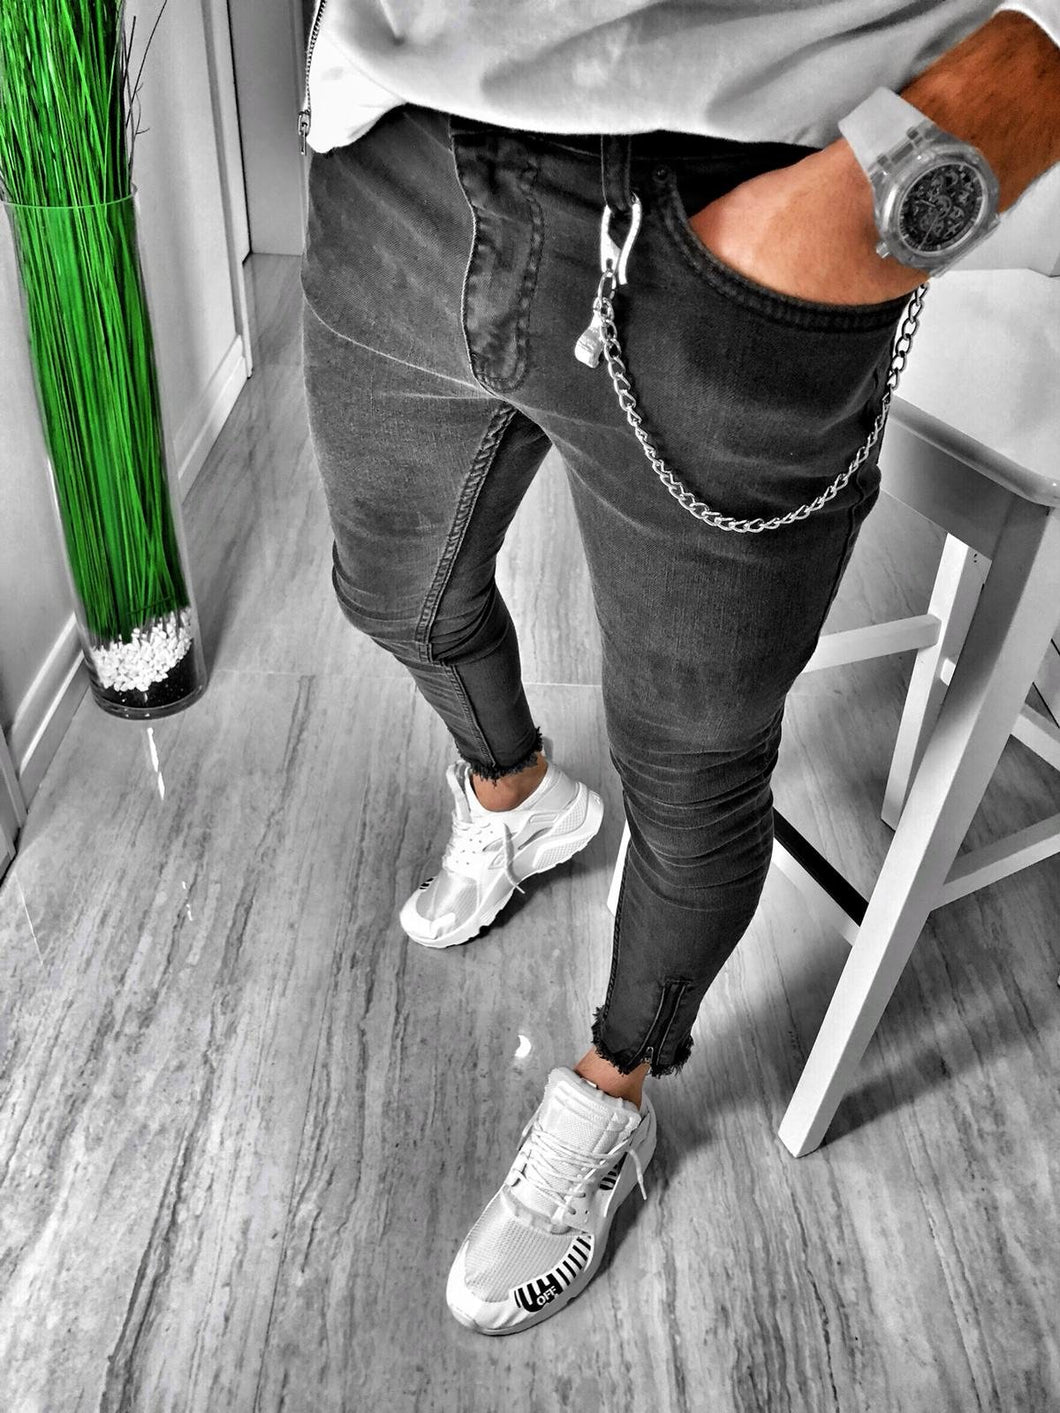 Black Washed Skinny Fit Denim S131 Streetwear Jeans - Sneakerjeans